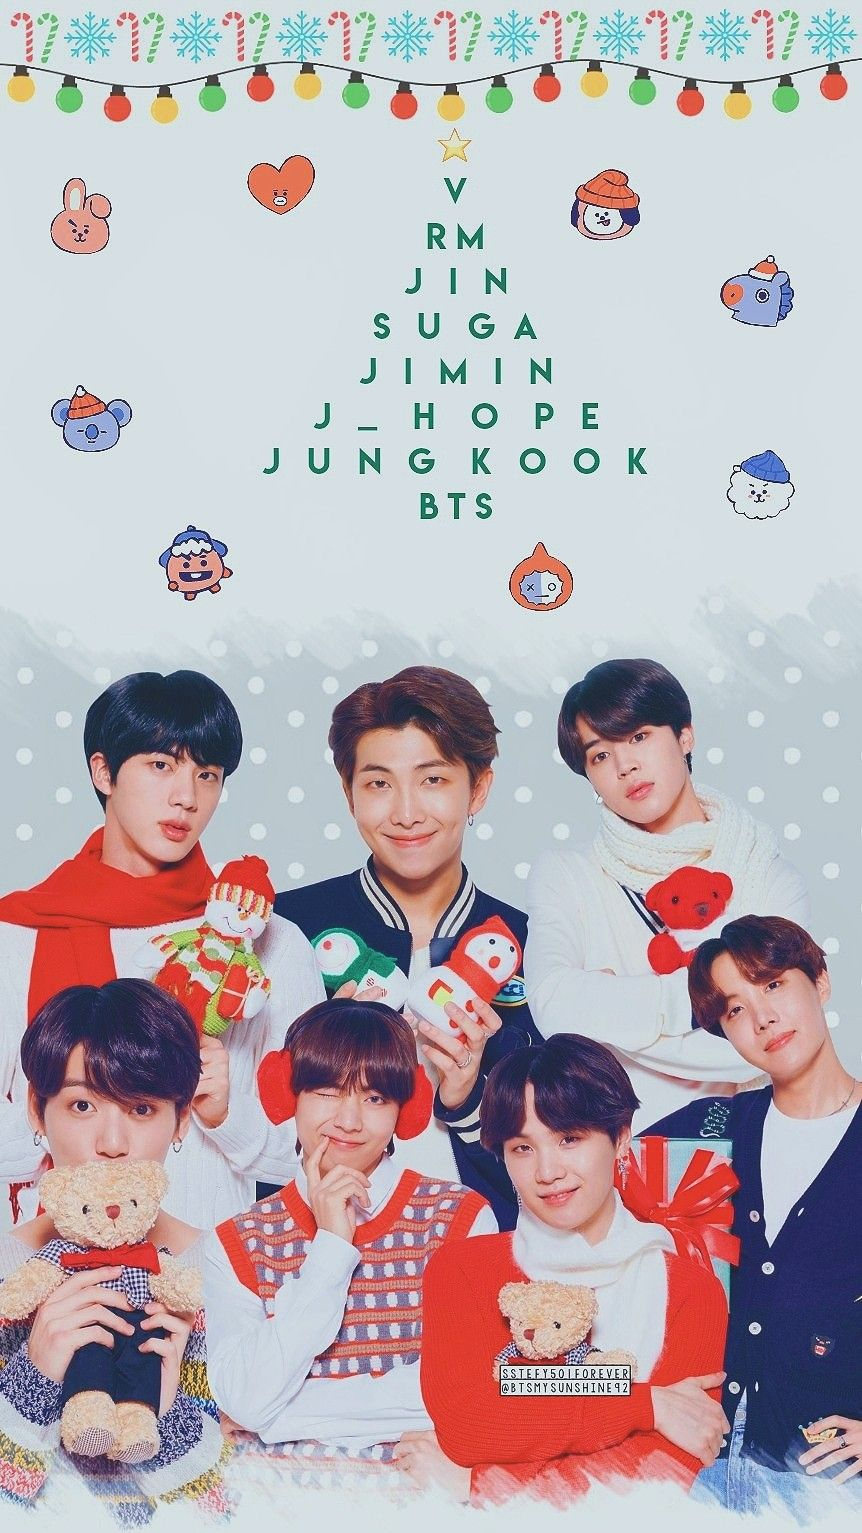 To All My Followers I Wish You A Merry Christmas With Your Loved Ones Thank You Very Much For Your Su Bts Christmas Christmas Wallpaper Bts Wallpaper